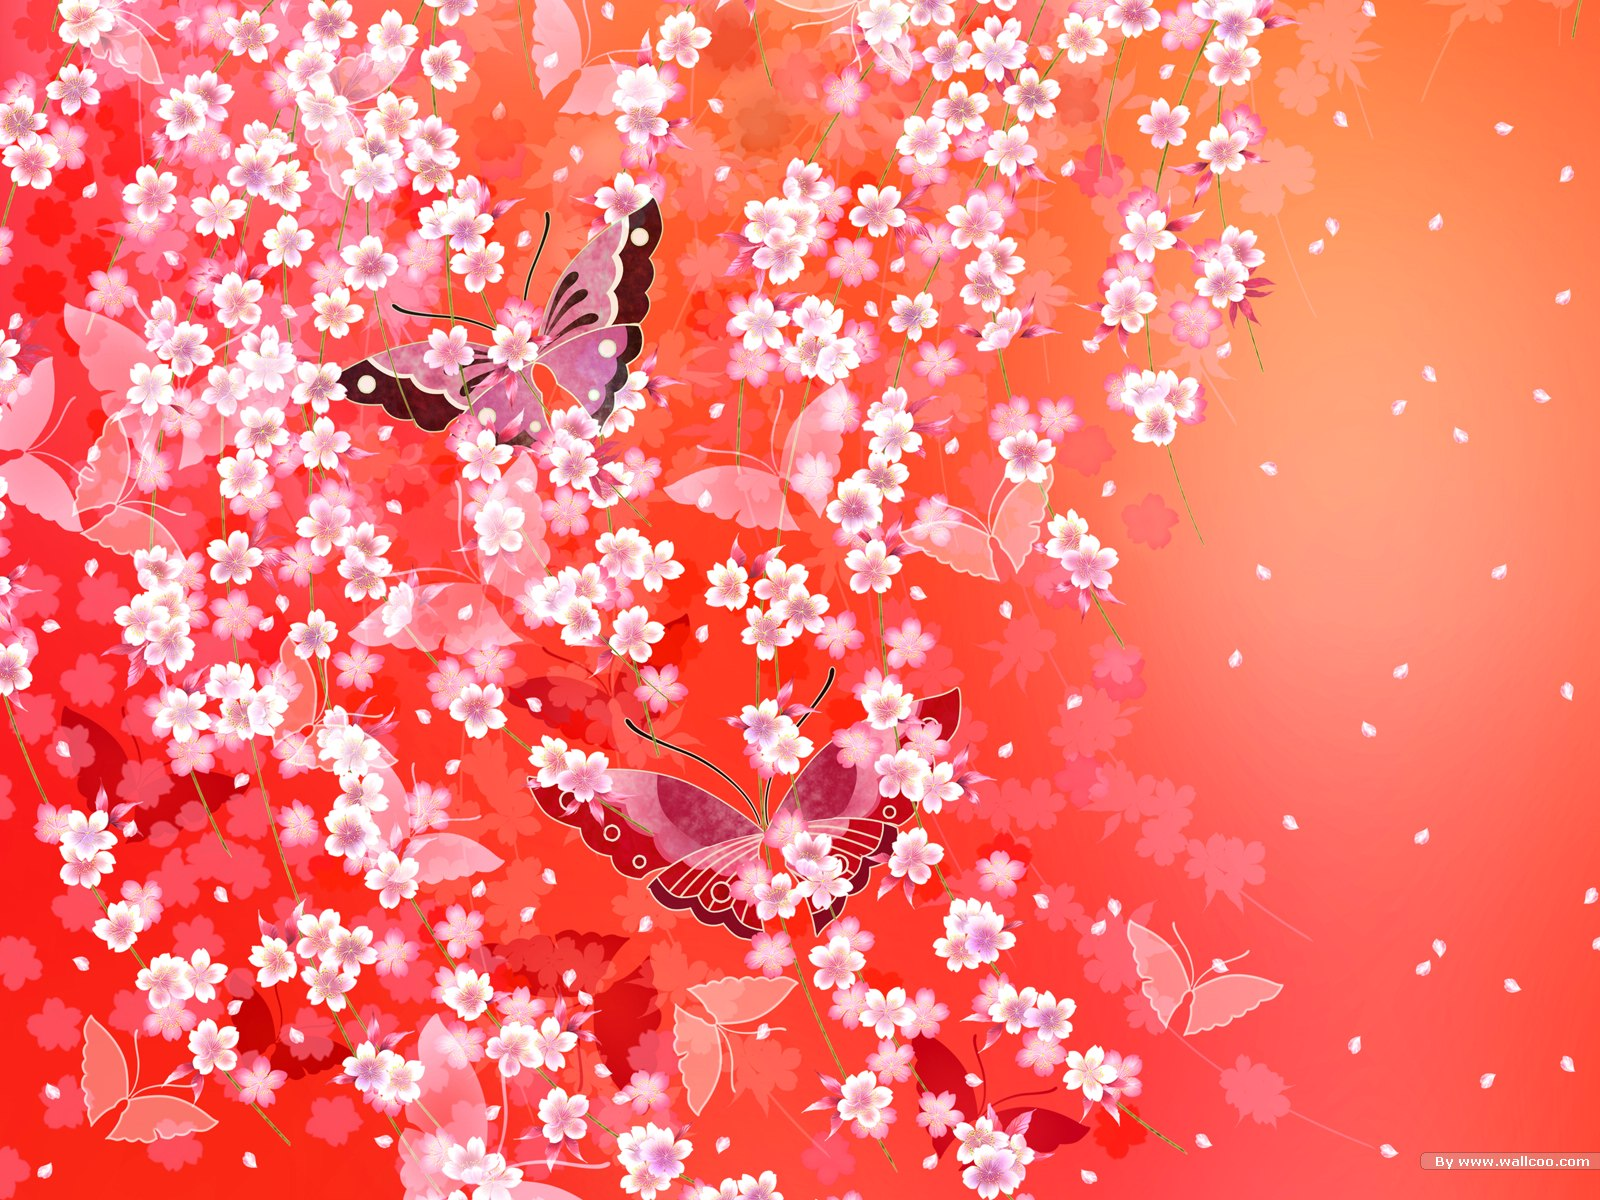 Japanese Kimonos Patterns Design   Colors and Patterns in Japanese 1600x1200